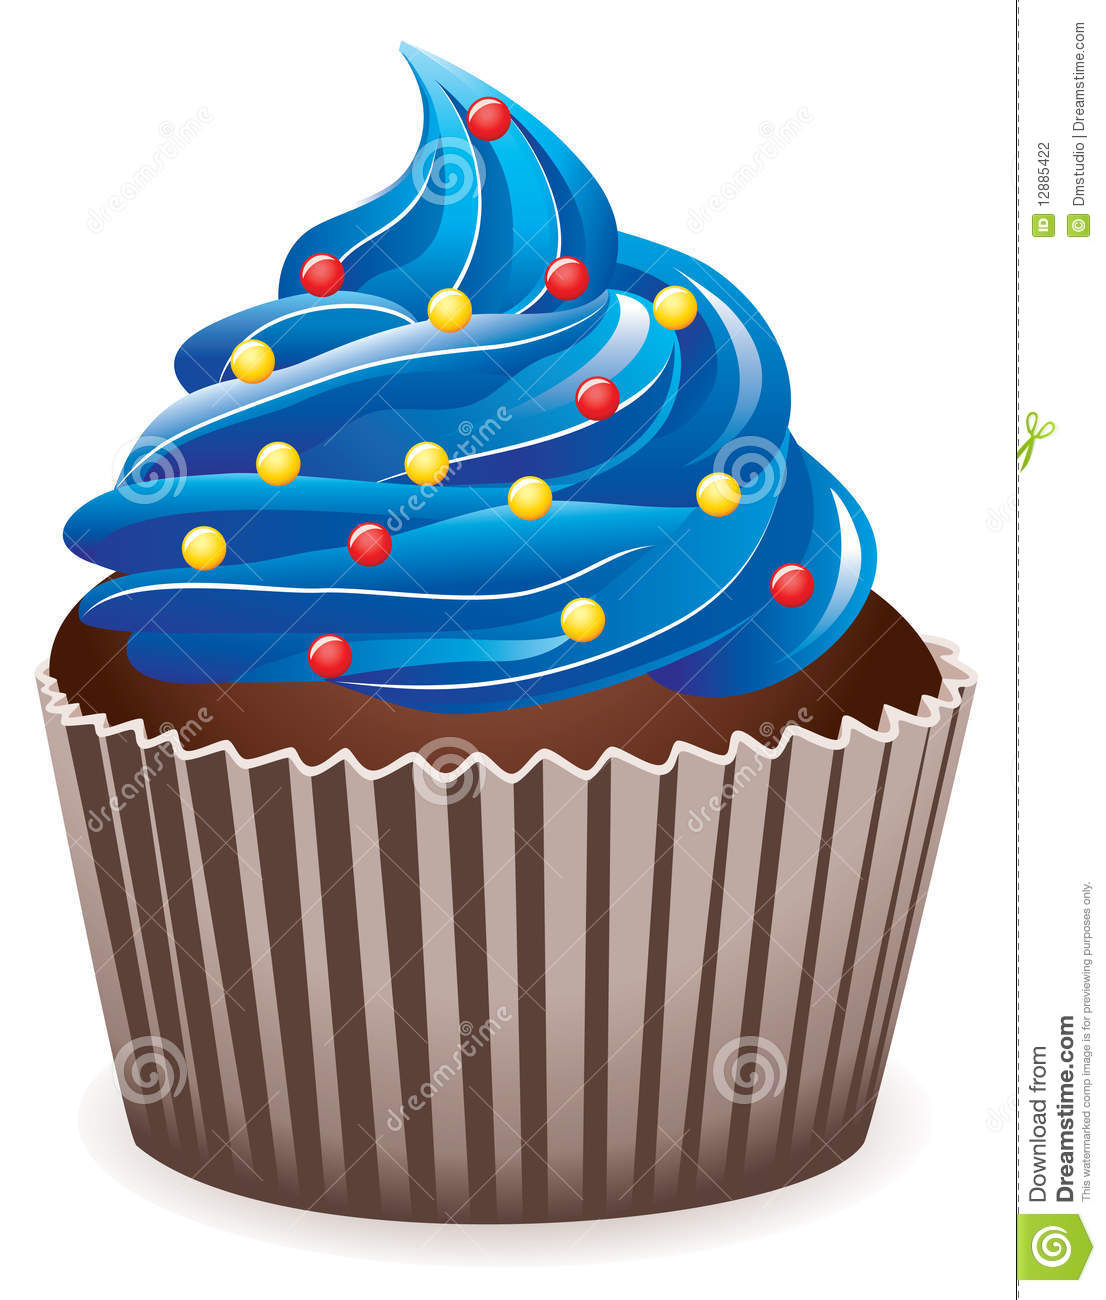 Blue Cupcake With Sprinkles Stock Photography - Image: 12885422